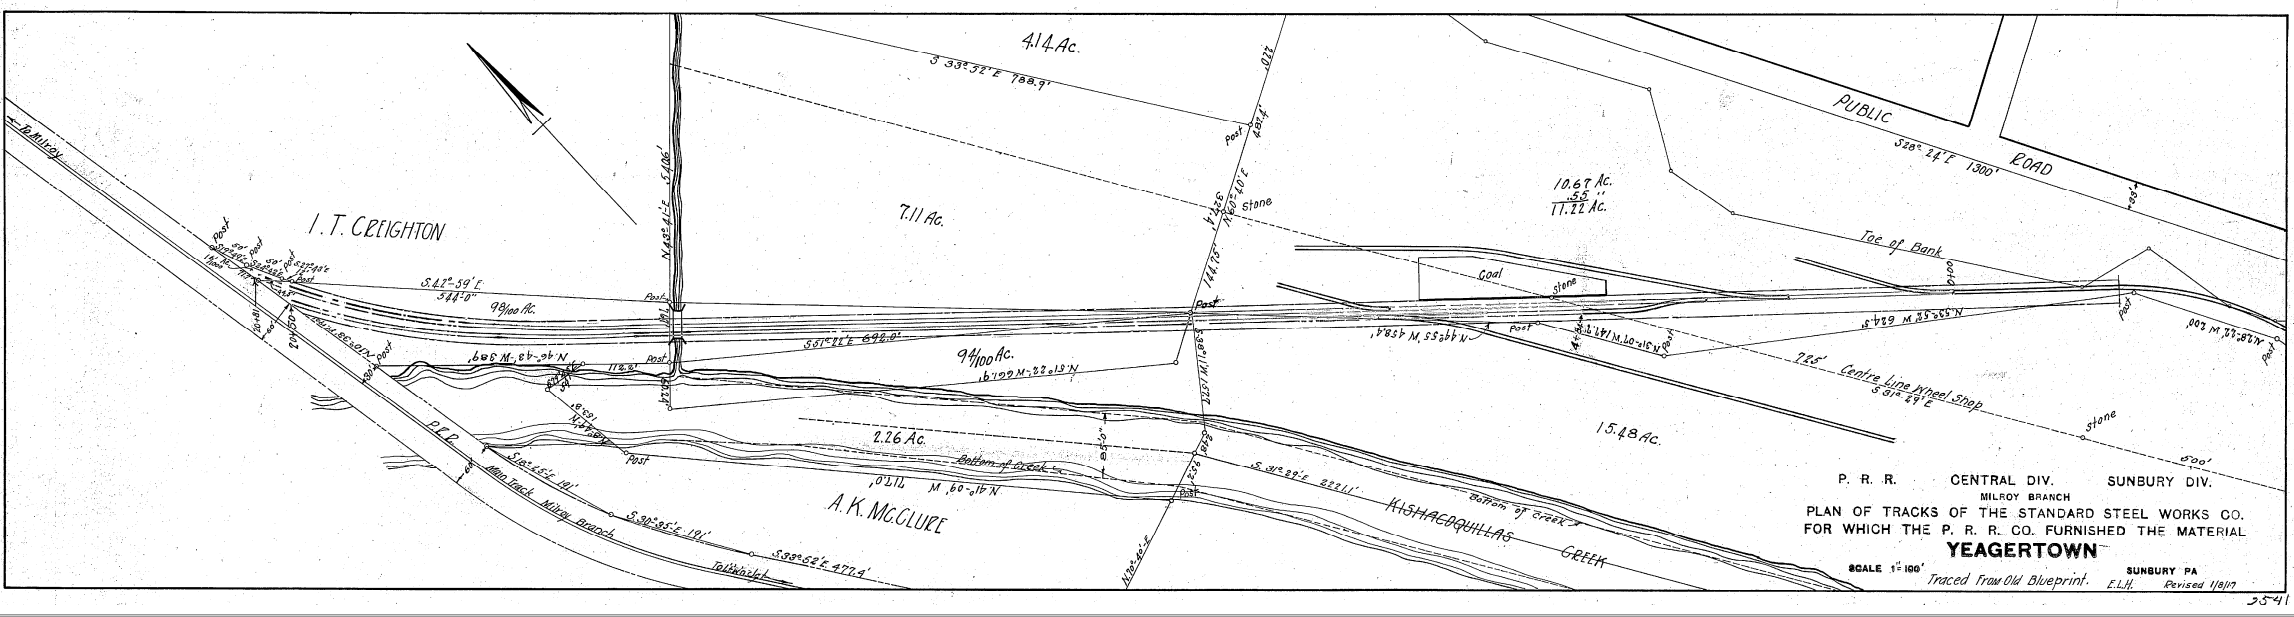 1917 Track Diagram of Standard Steel